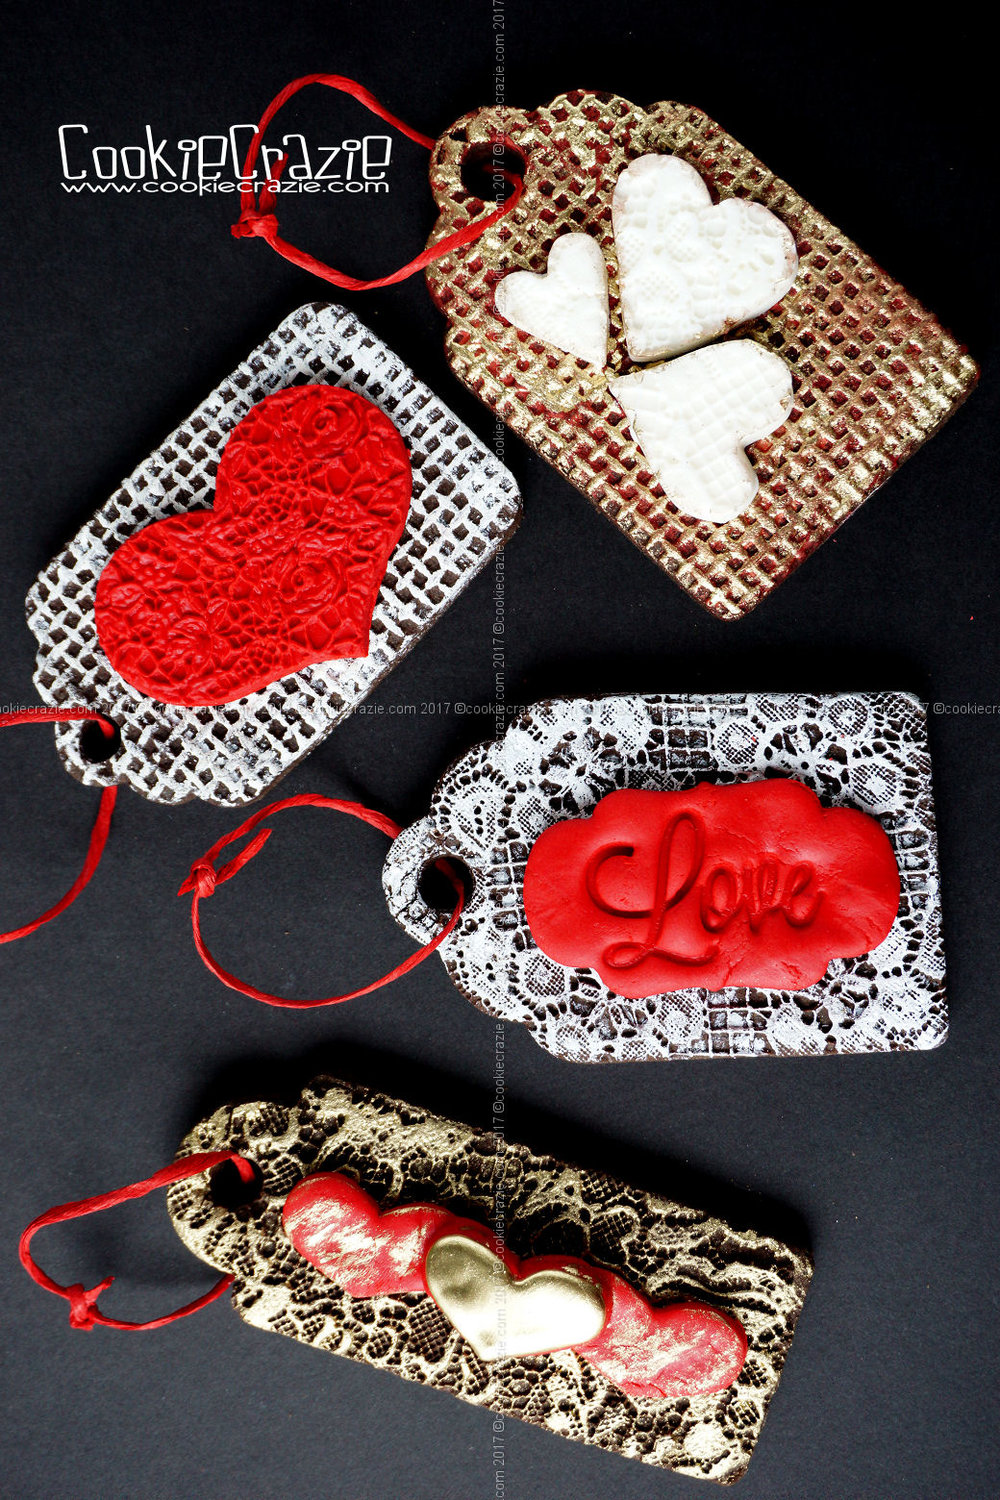 Embossed Valentine Gift Tag Decorated Sugar Cookies YouTube video  HERE         Tag Cutters found  HERE